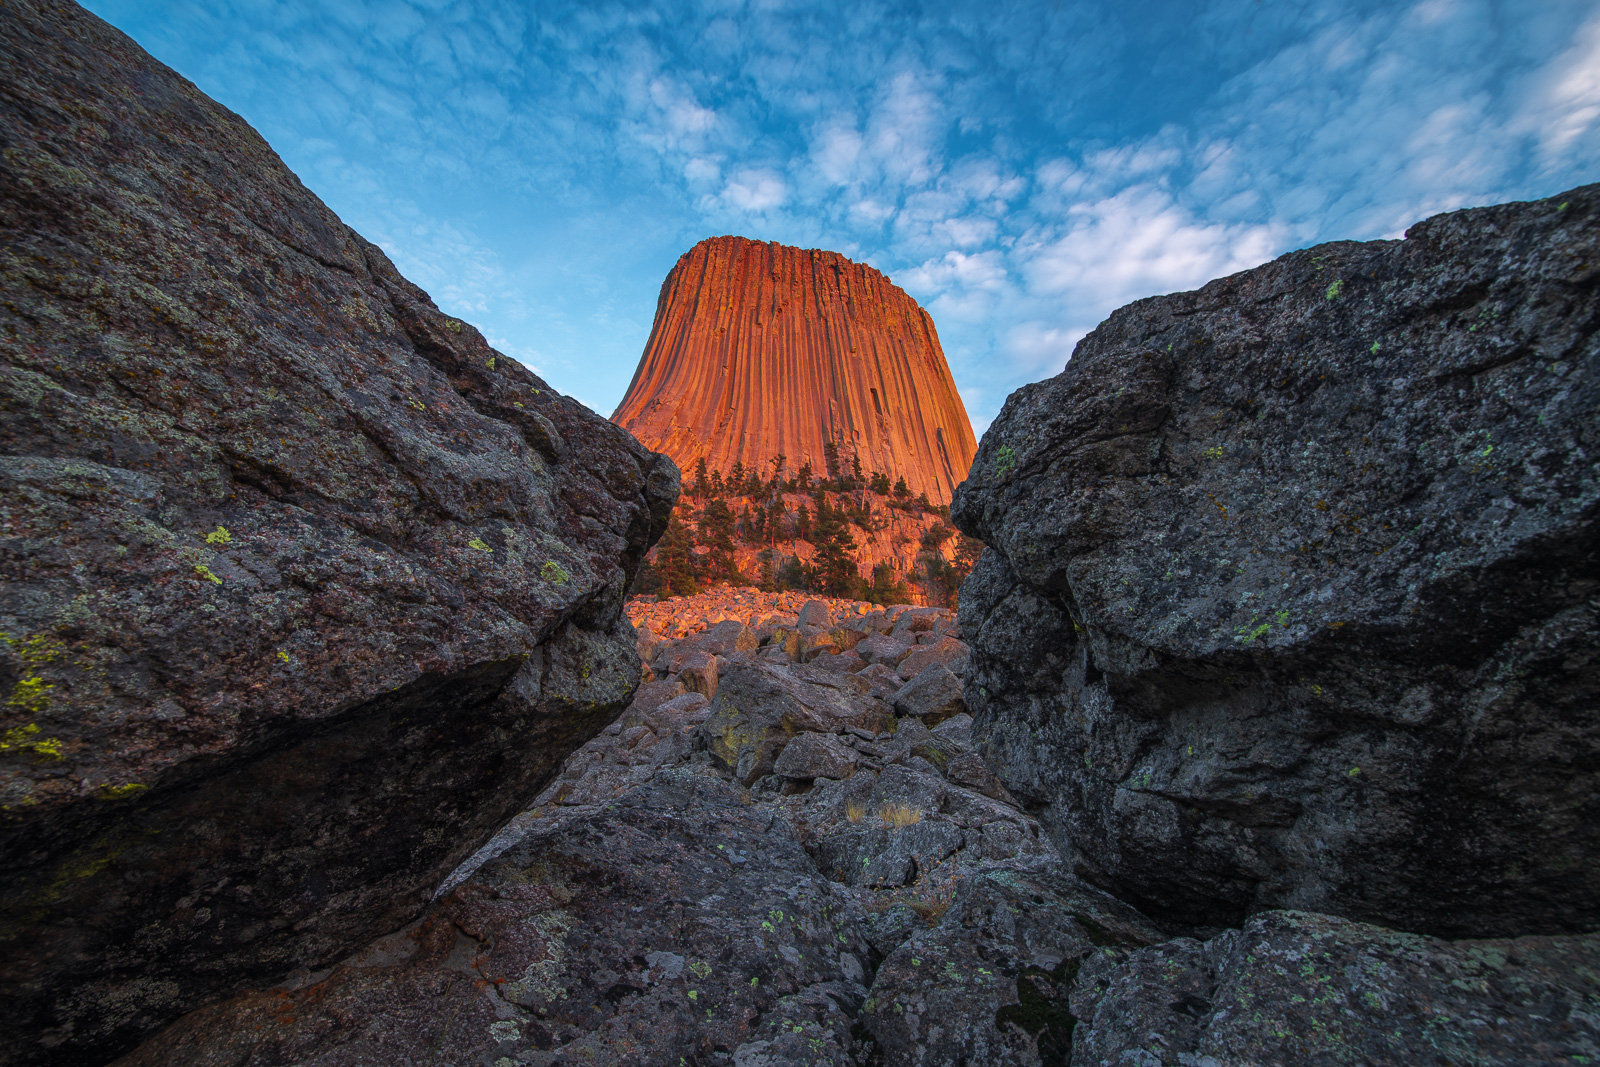 The Tower is a solitary, stump-shaped granite formation that looms 1,267 feet above the tree-lined Belle Fourche River Valley...